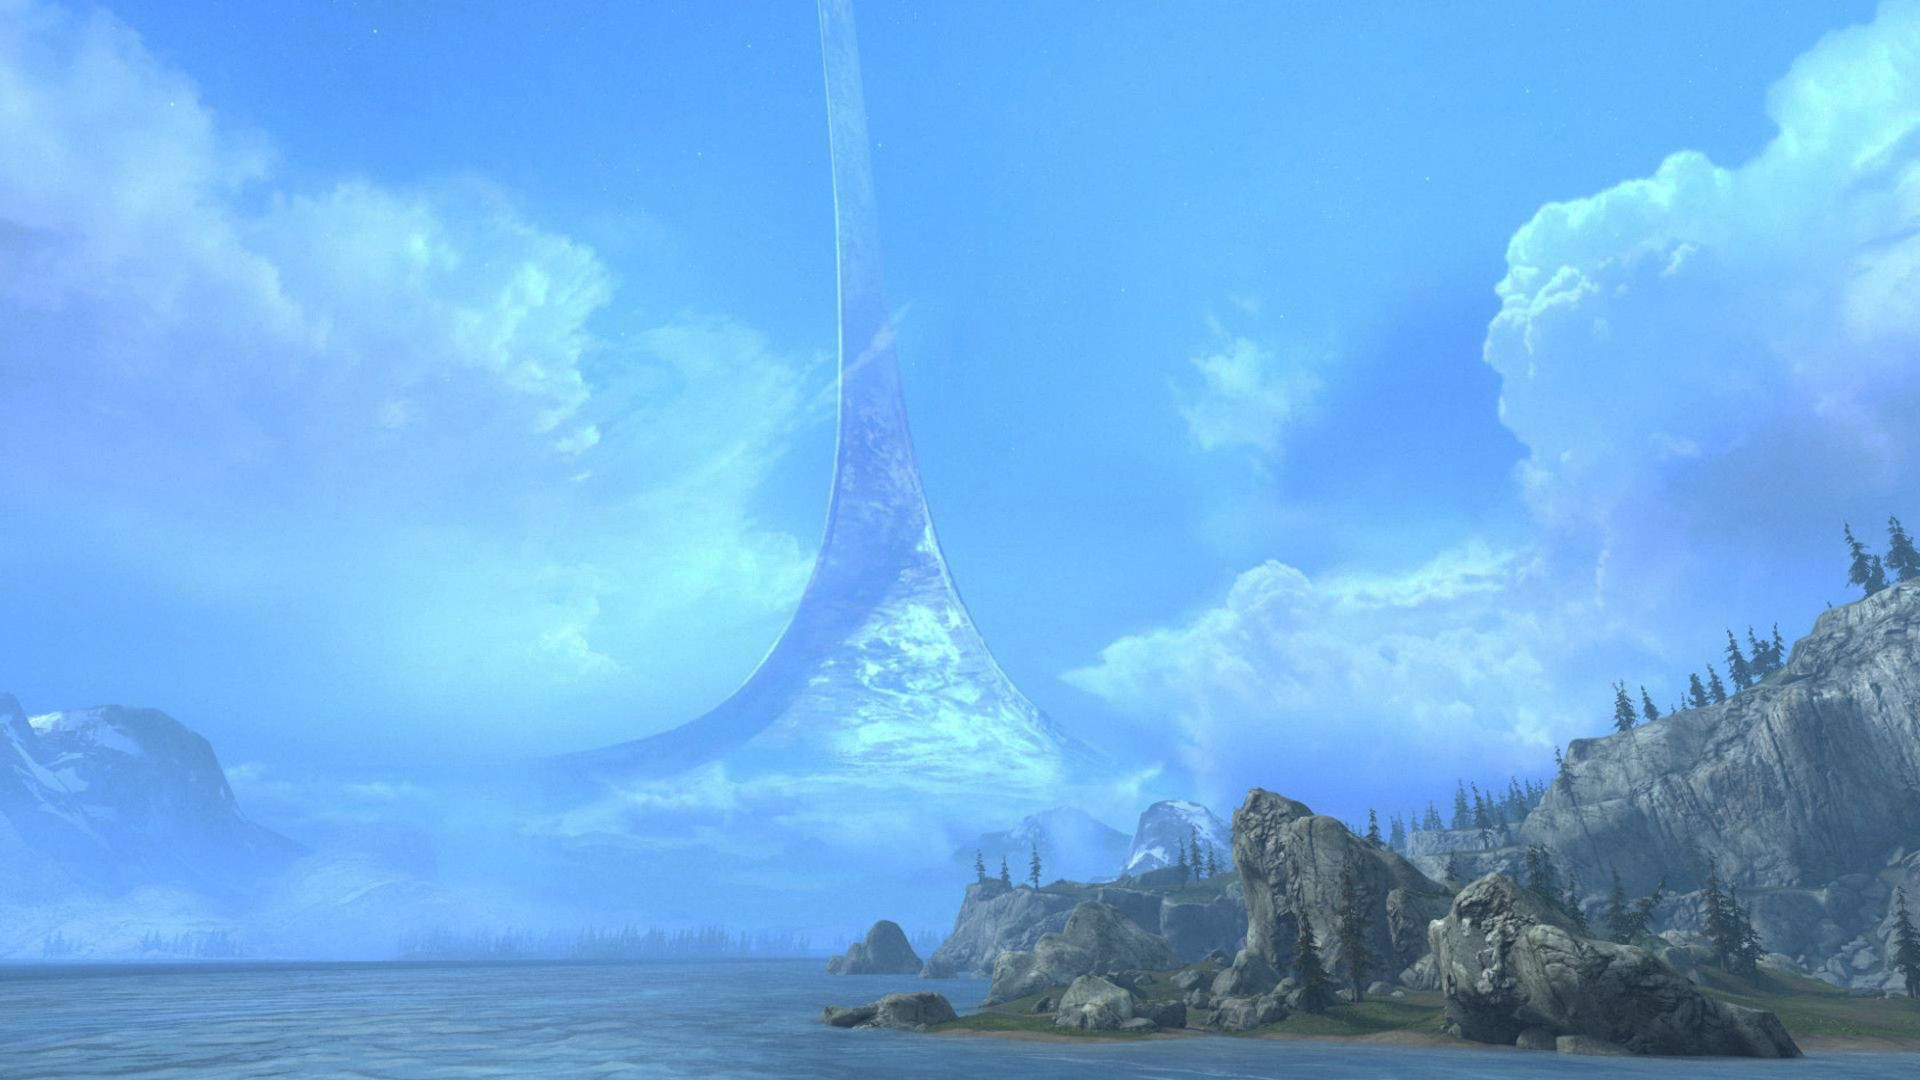 Ring World/Halo wallpaper 1920x1080 | Wallpaper, Sci fi ...